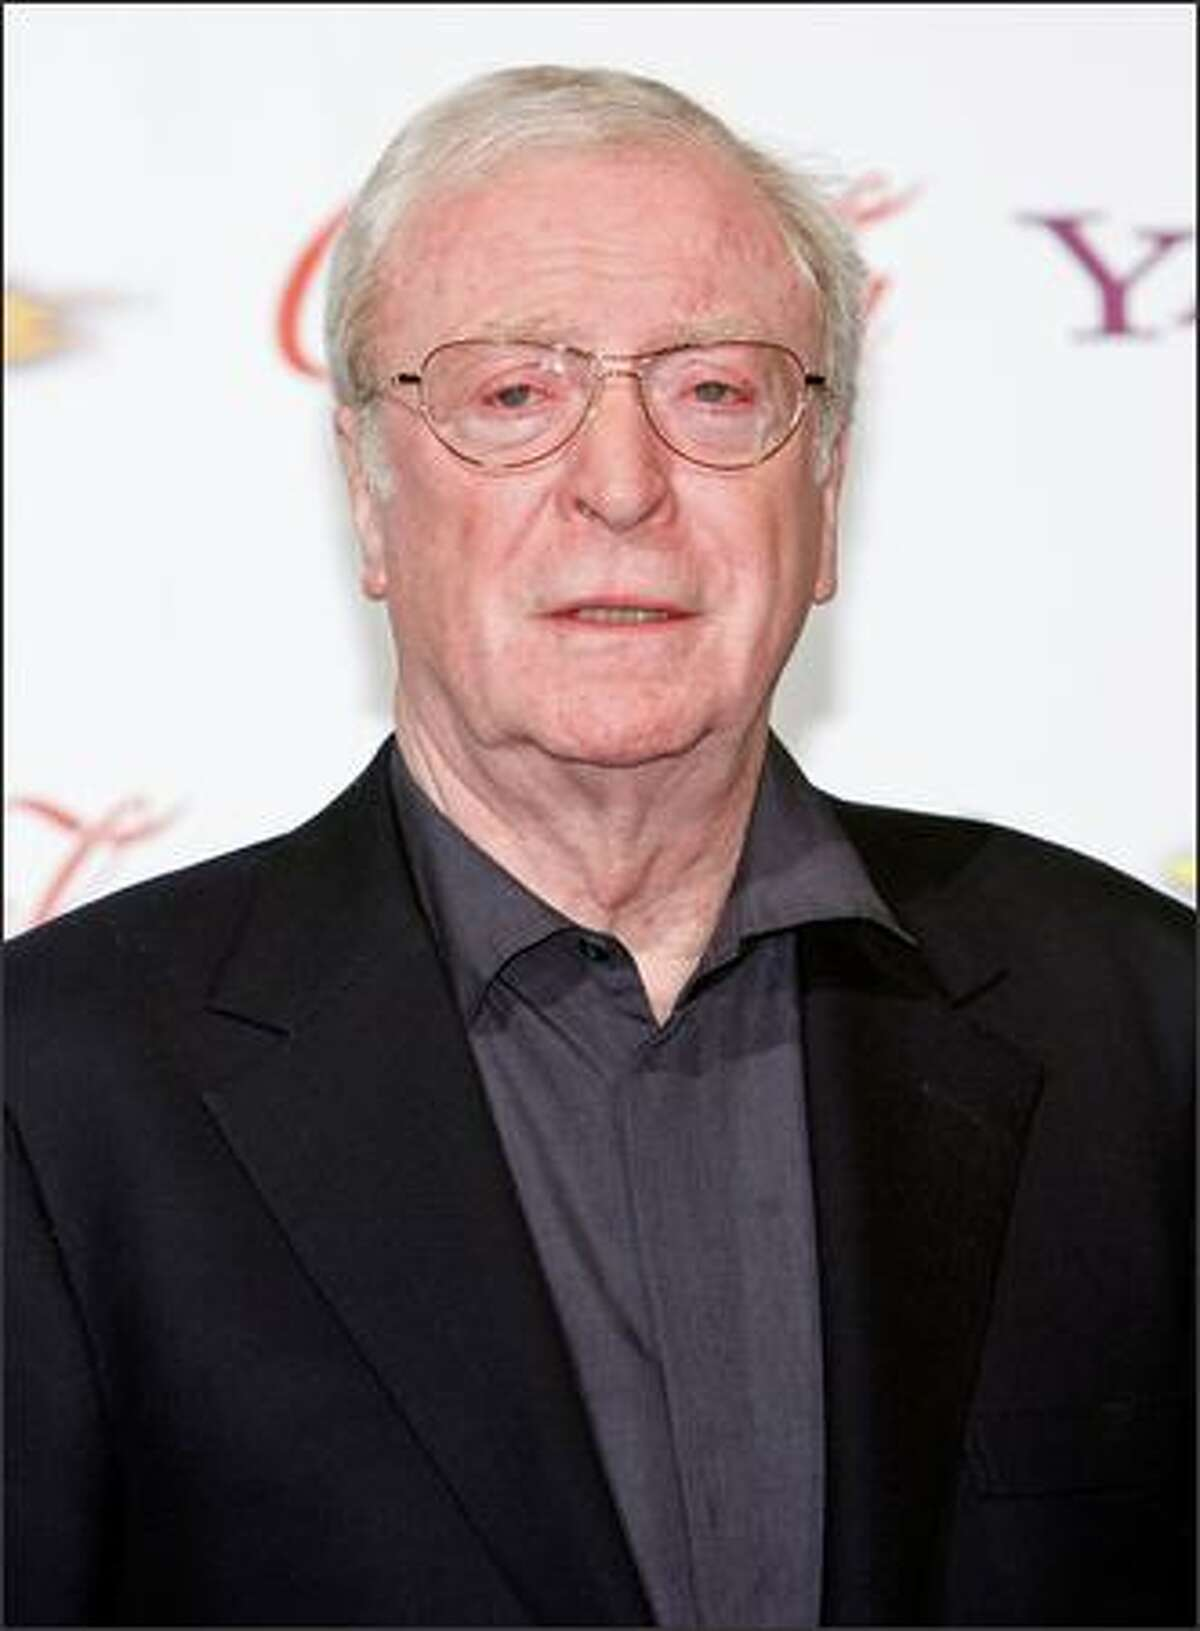 Actor Michael Caine, recipient of the Lifetime Achievement Award, attends the 2009 ShoWest convention final night banquet and awards ceremony held at Paris Las Vegas on Thursday, April 2, 2009. ShoWest is a gathering of movie theater owners and operators.